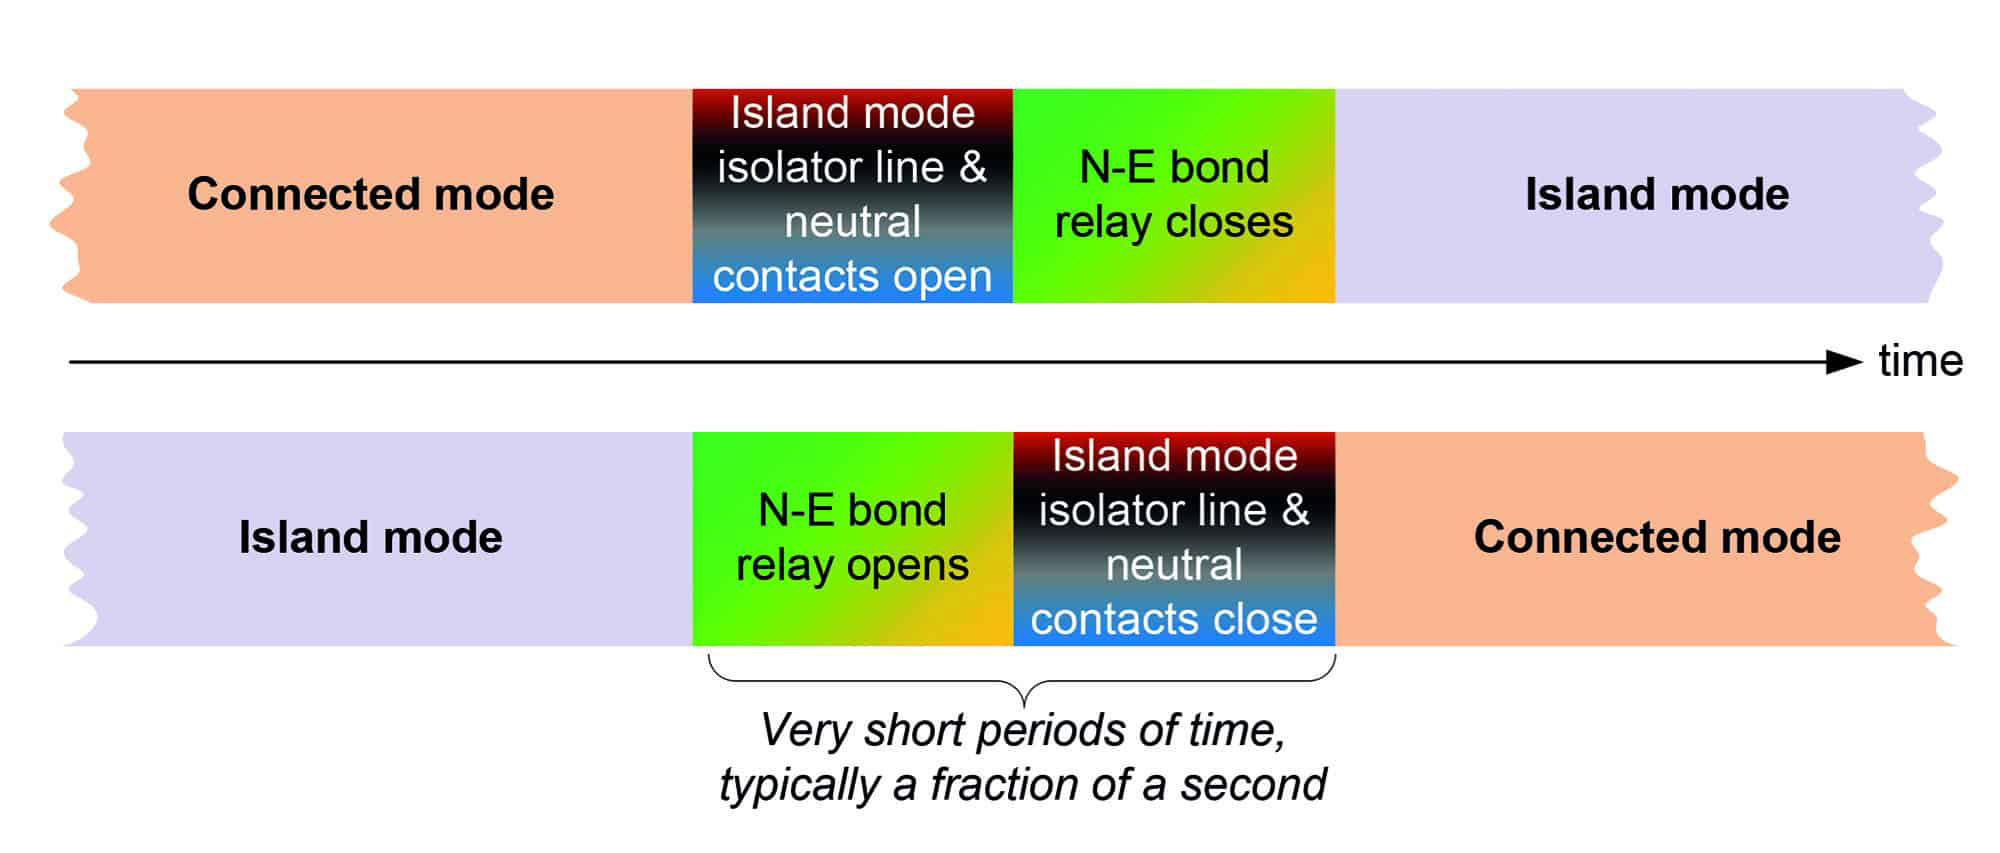 Figure 4: Timing requirements for island mode switching arrangements